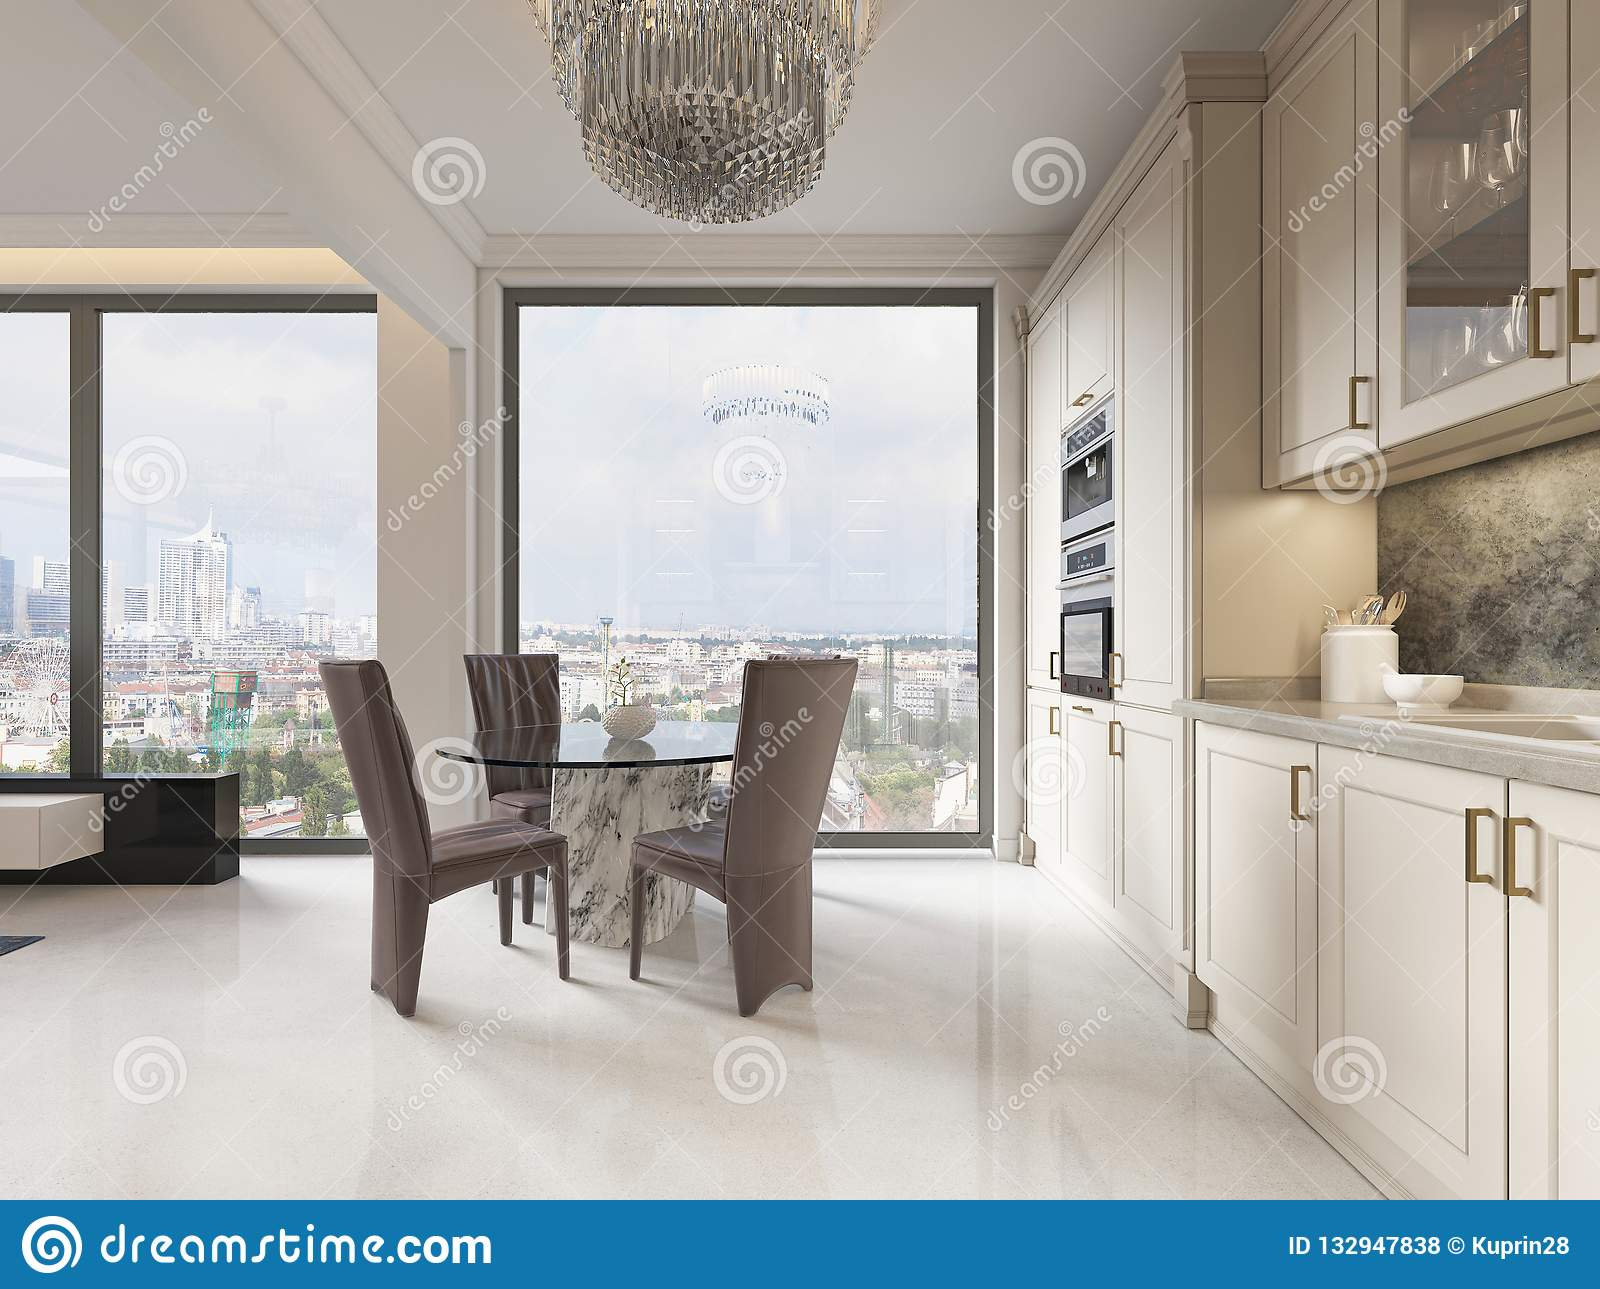 A Luxurious Modern-style Kitchen With A Dining Table And A